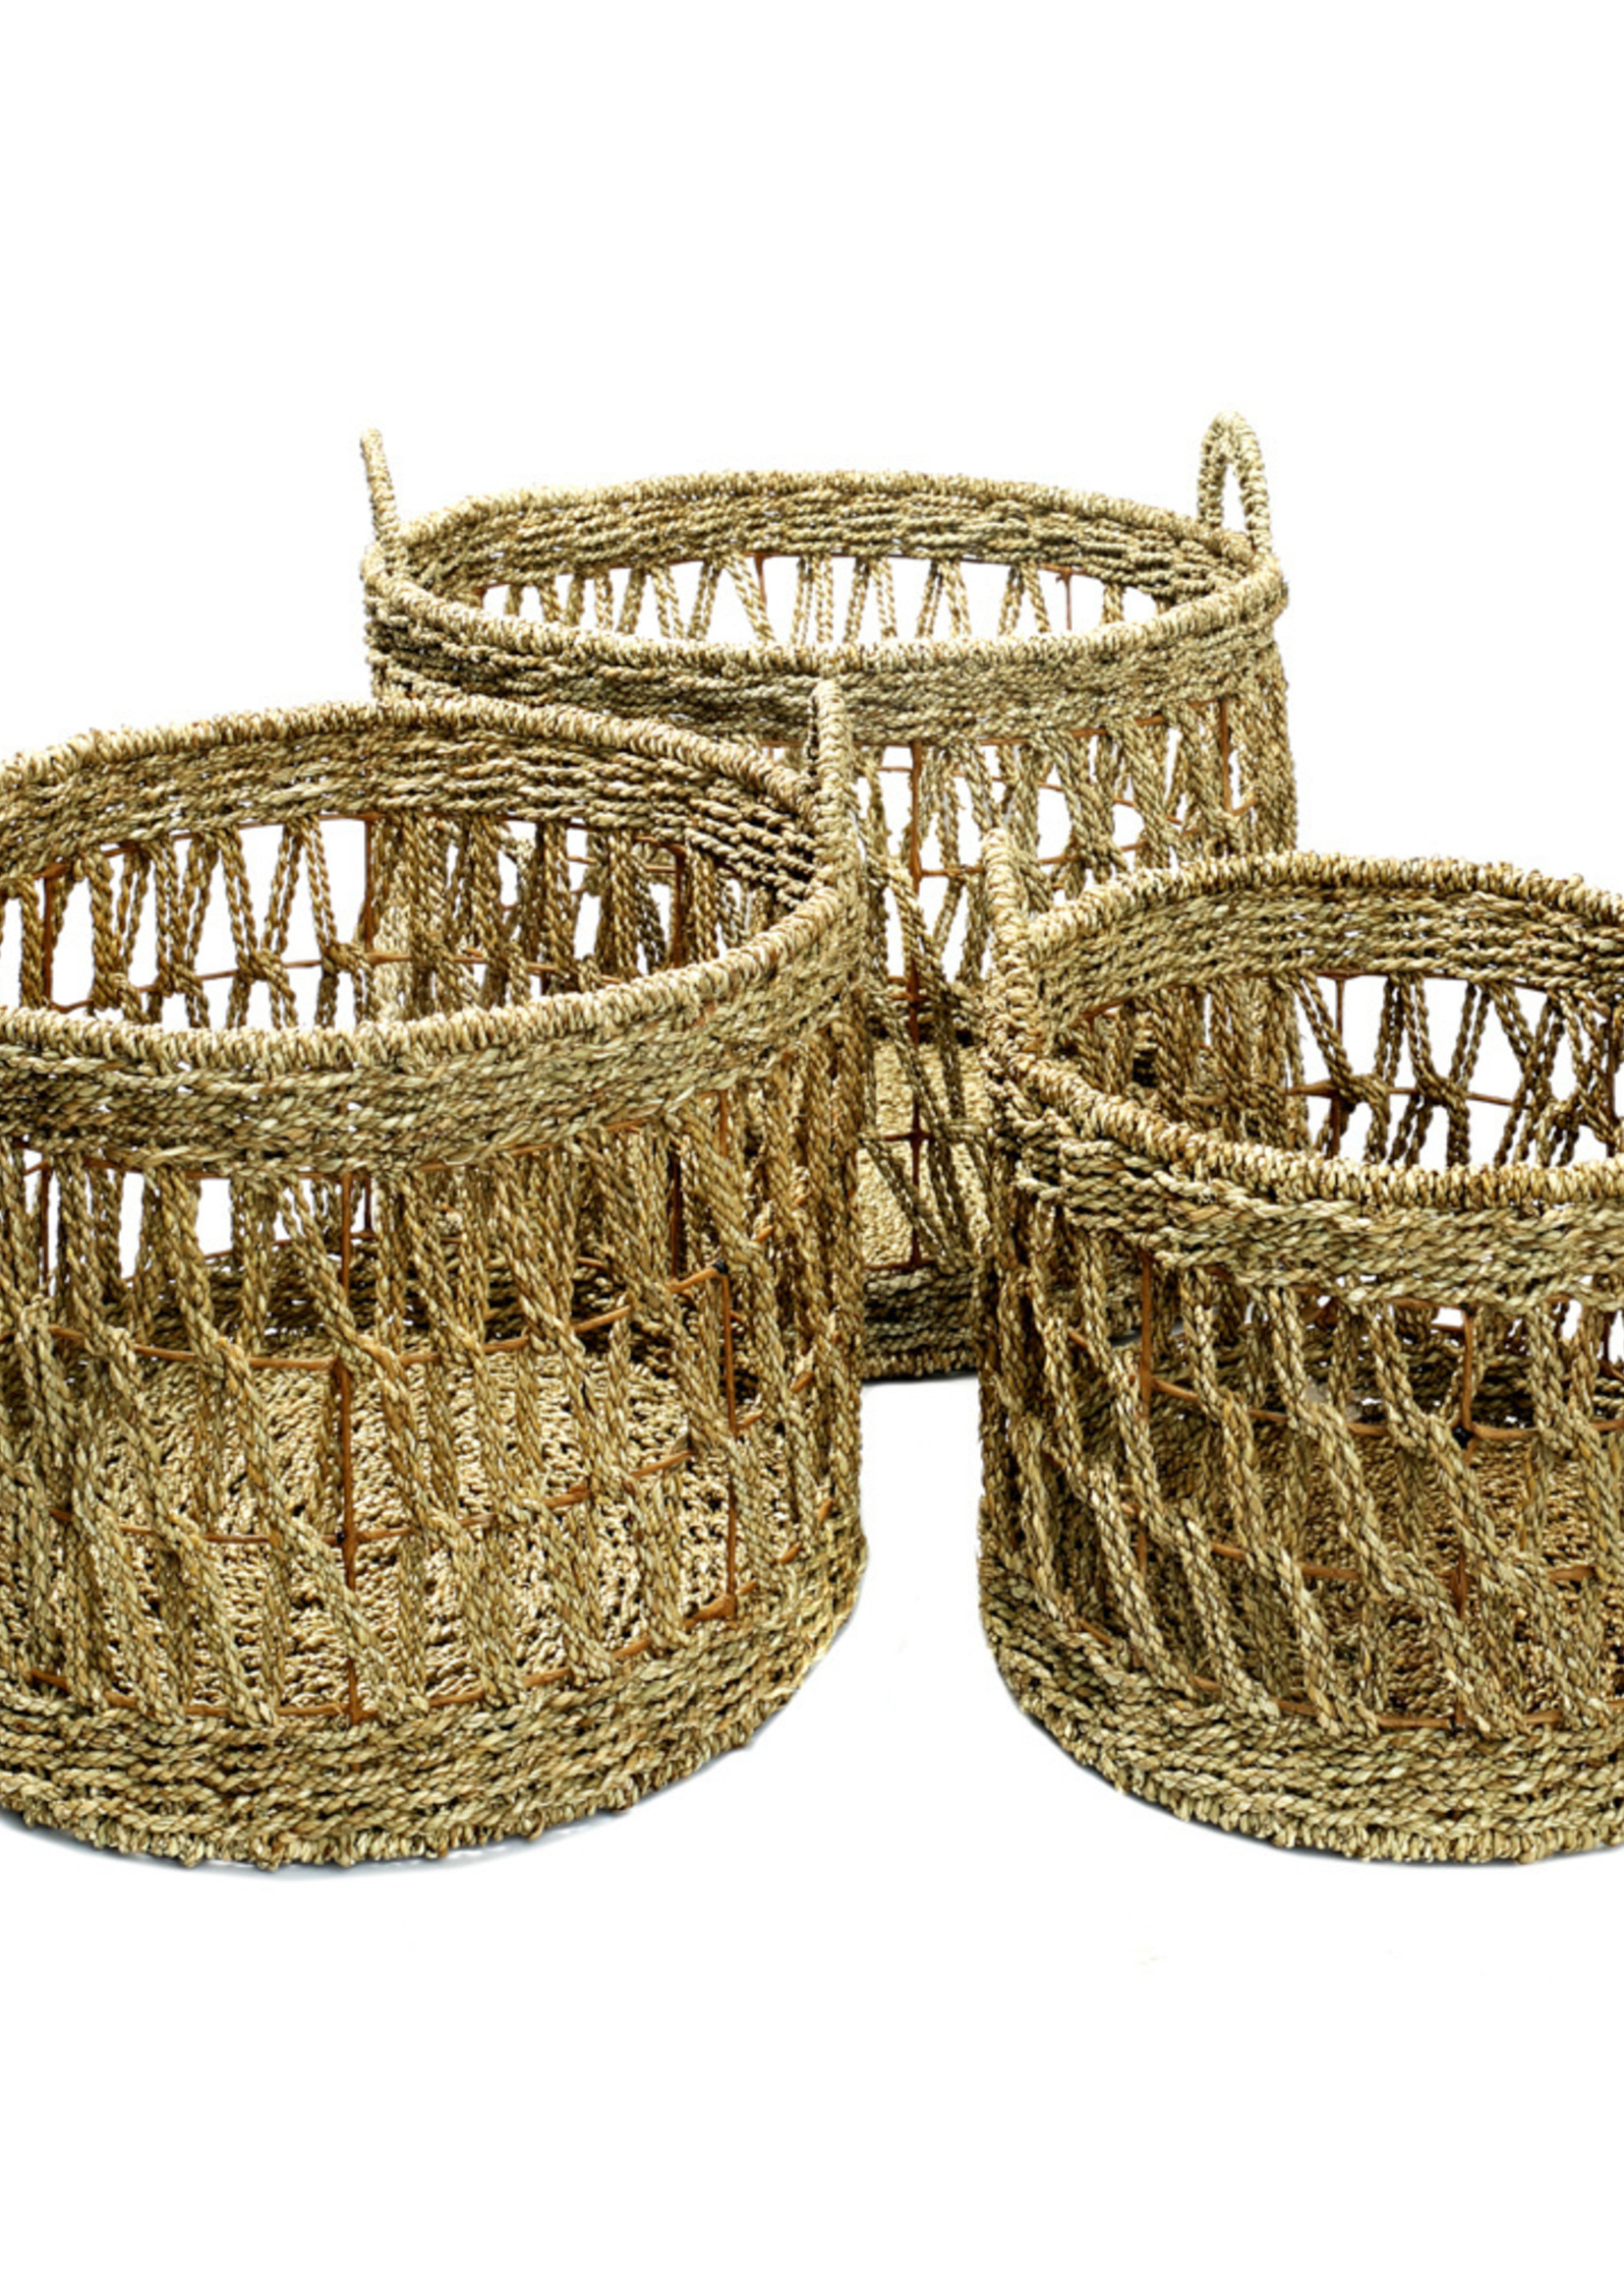 The Perfore Baskets - Natural - SET3